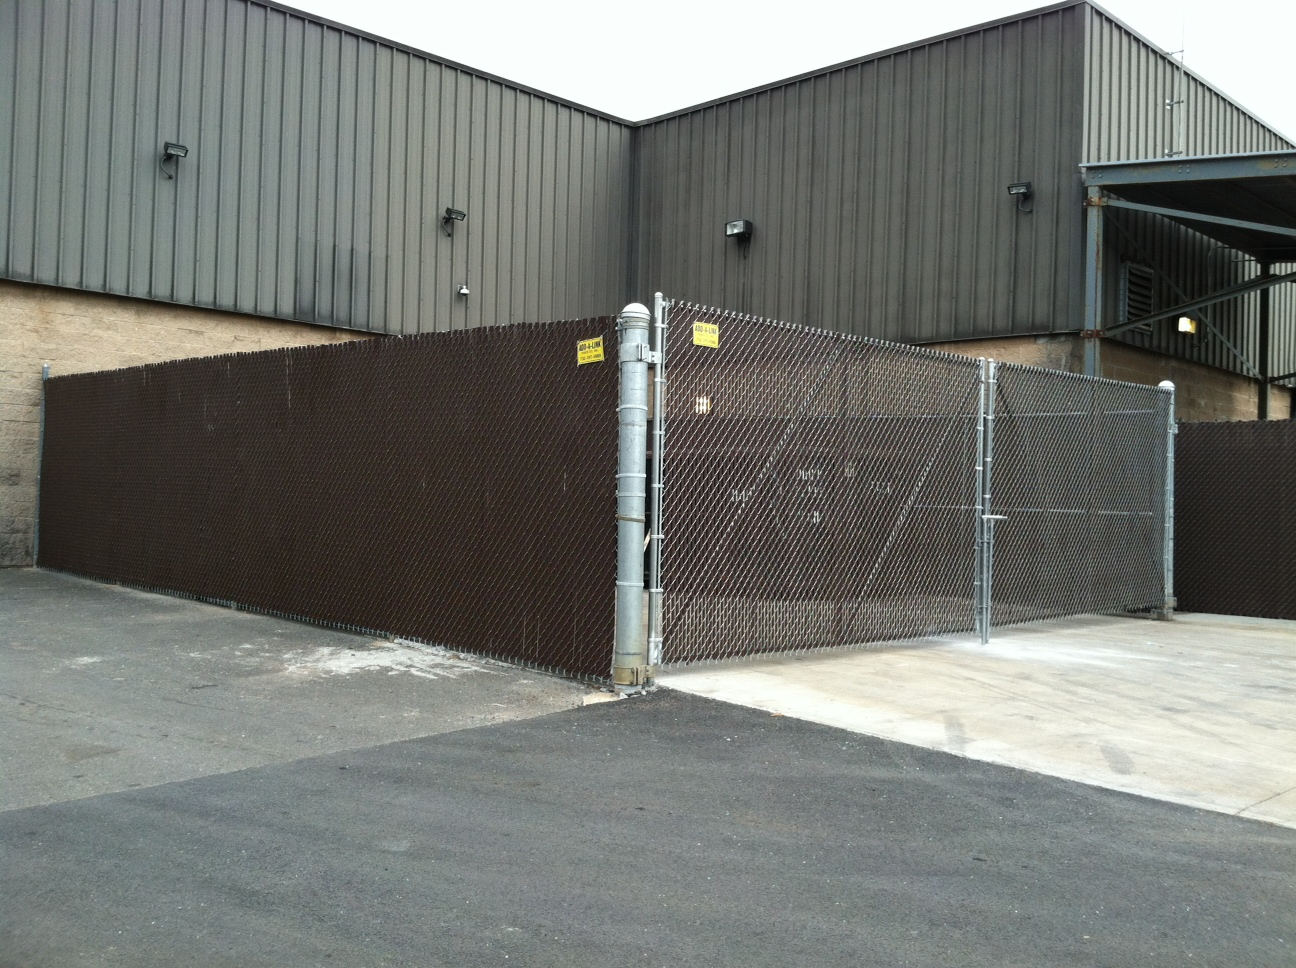 Large Dumpster Enclosure